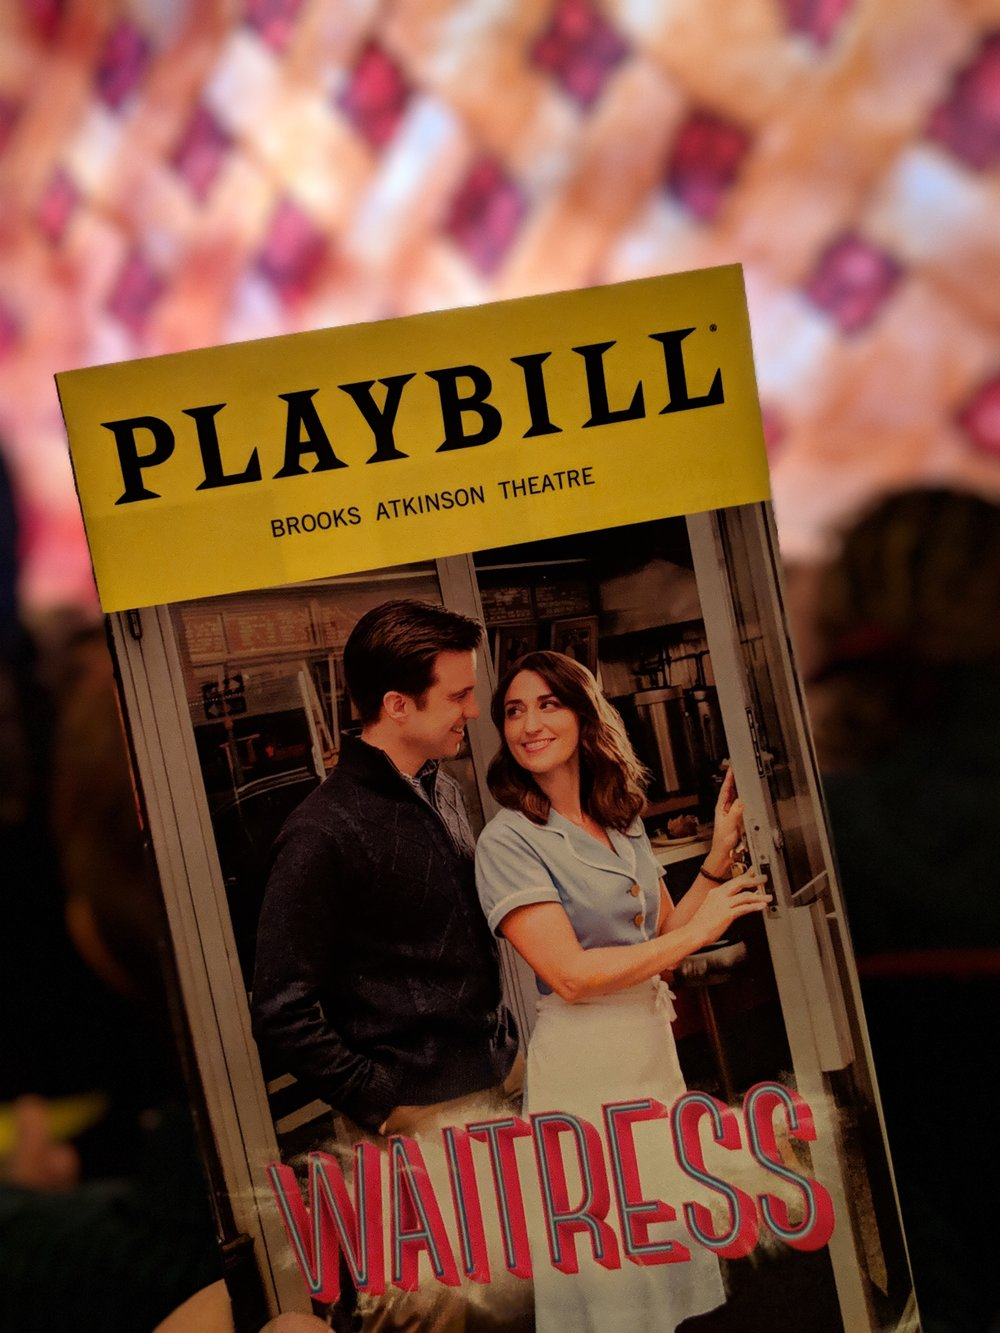 We couldn't go to NYC and not see a Broadway show!  Waitress  was a last minute decision thanks to  TKTS  - we got them at their discounted ticket booth in Time Square. If you don't mind waiting until day of to book your tickets, I'd HIGHLY recommend TKTS!